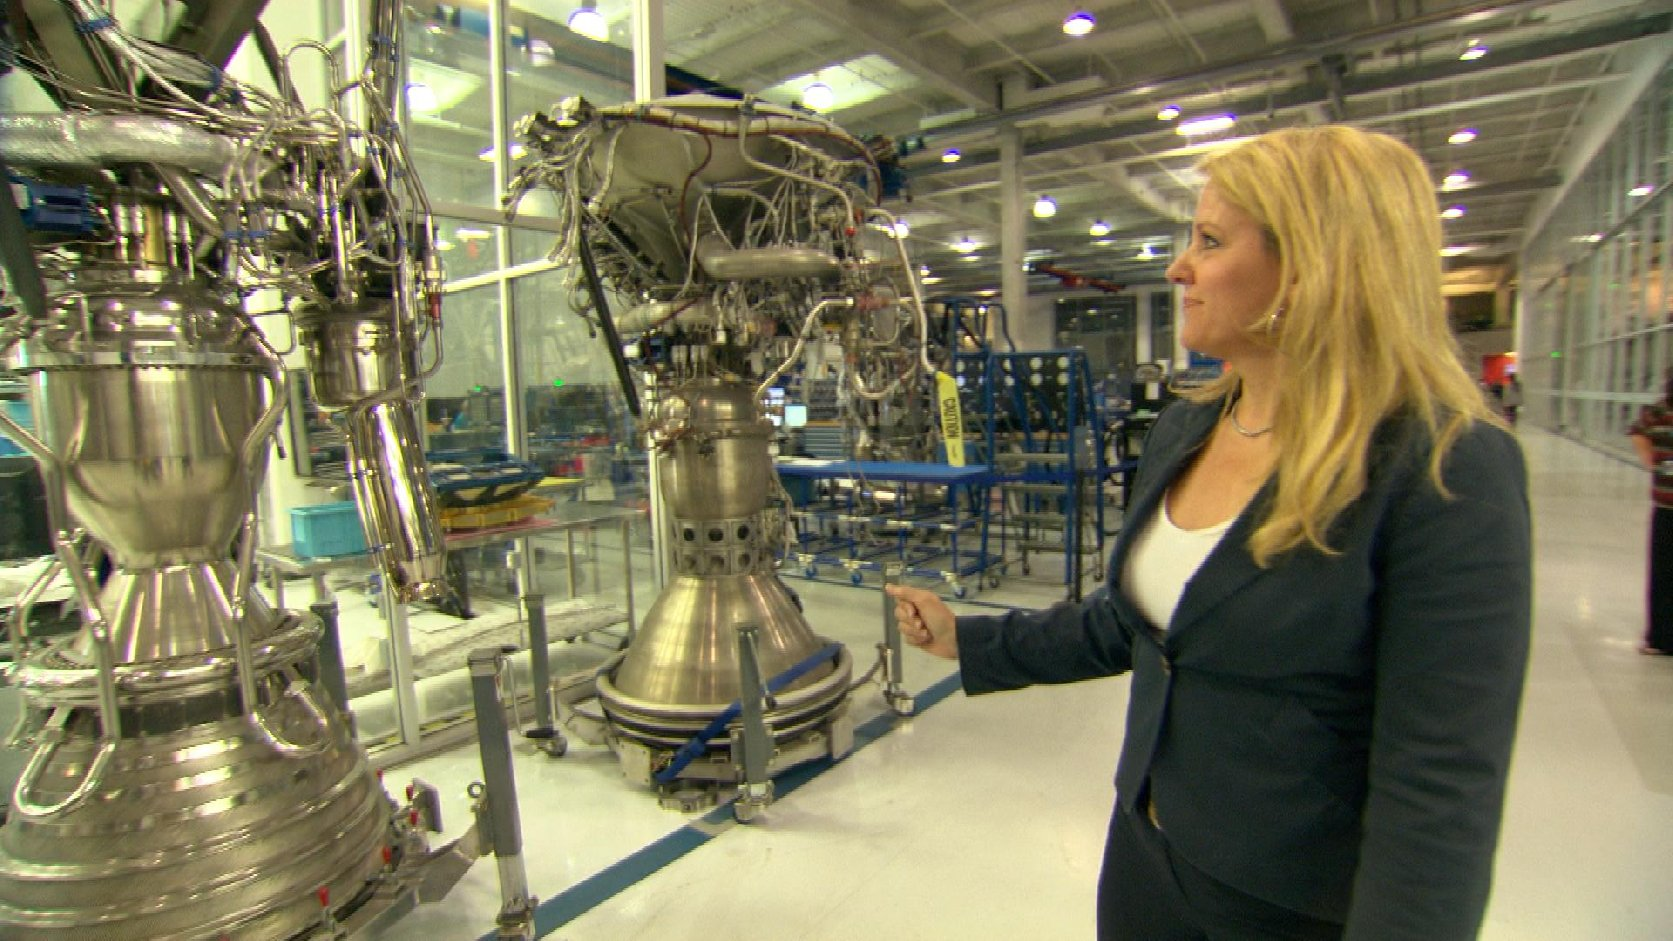 Gwynne Shotwell, President and COO of SpaceX, shows off rocket engines being built at the company's headquarters near L.A. Image by Jayme Roy